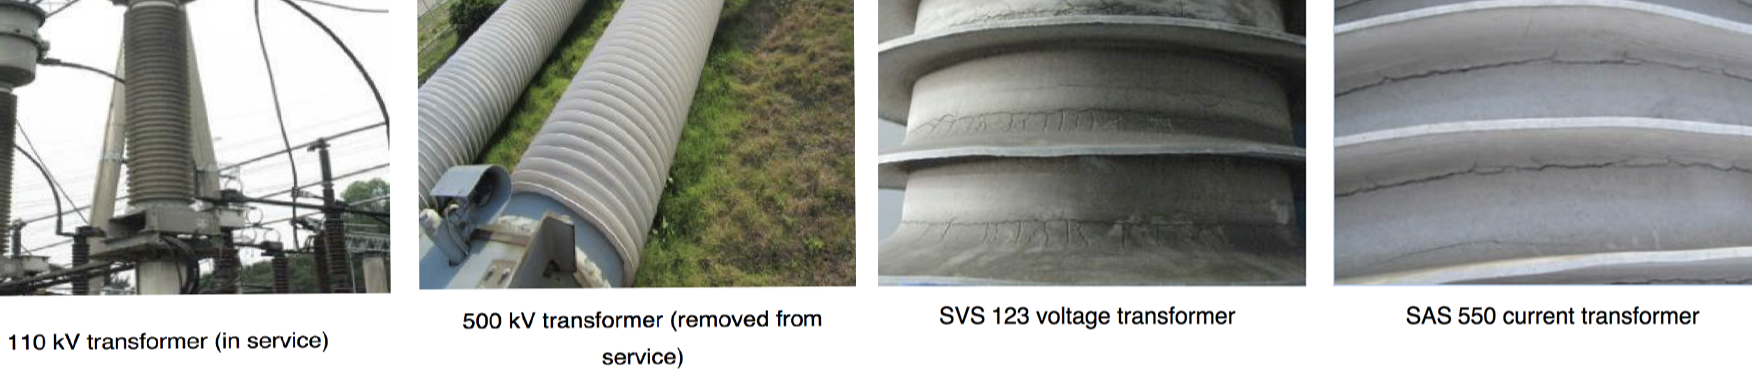 Fig. 1: Examples of damage seen on composite insulators made with LSR.  rtv coated insulators Repair & Re-Coating Techniques for Composite Housings & RTV Coated Insulators Screen Shot 2016 06 23 at 14